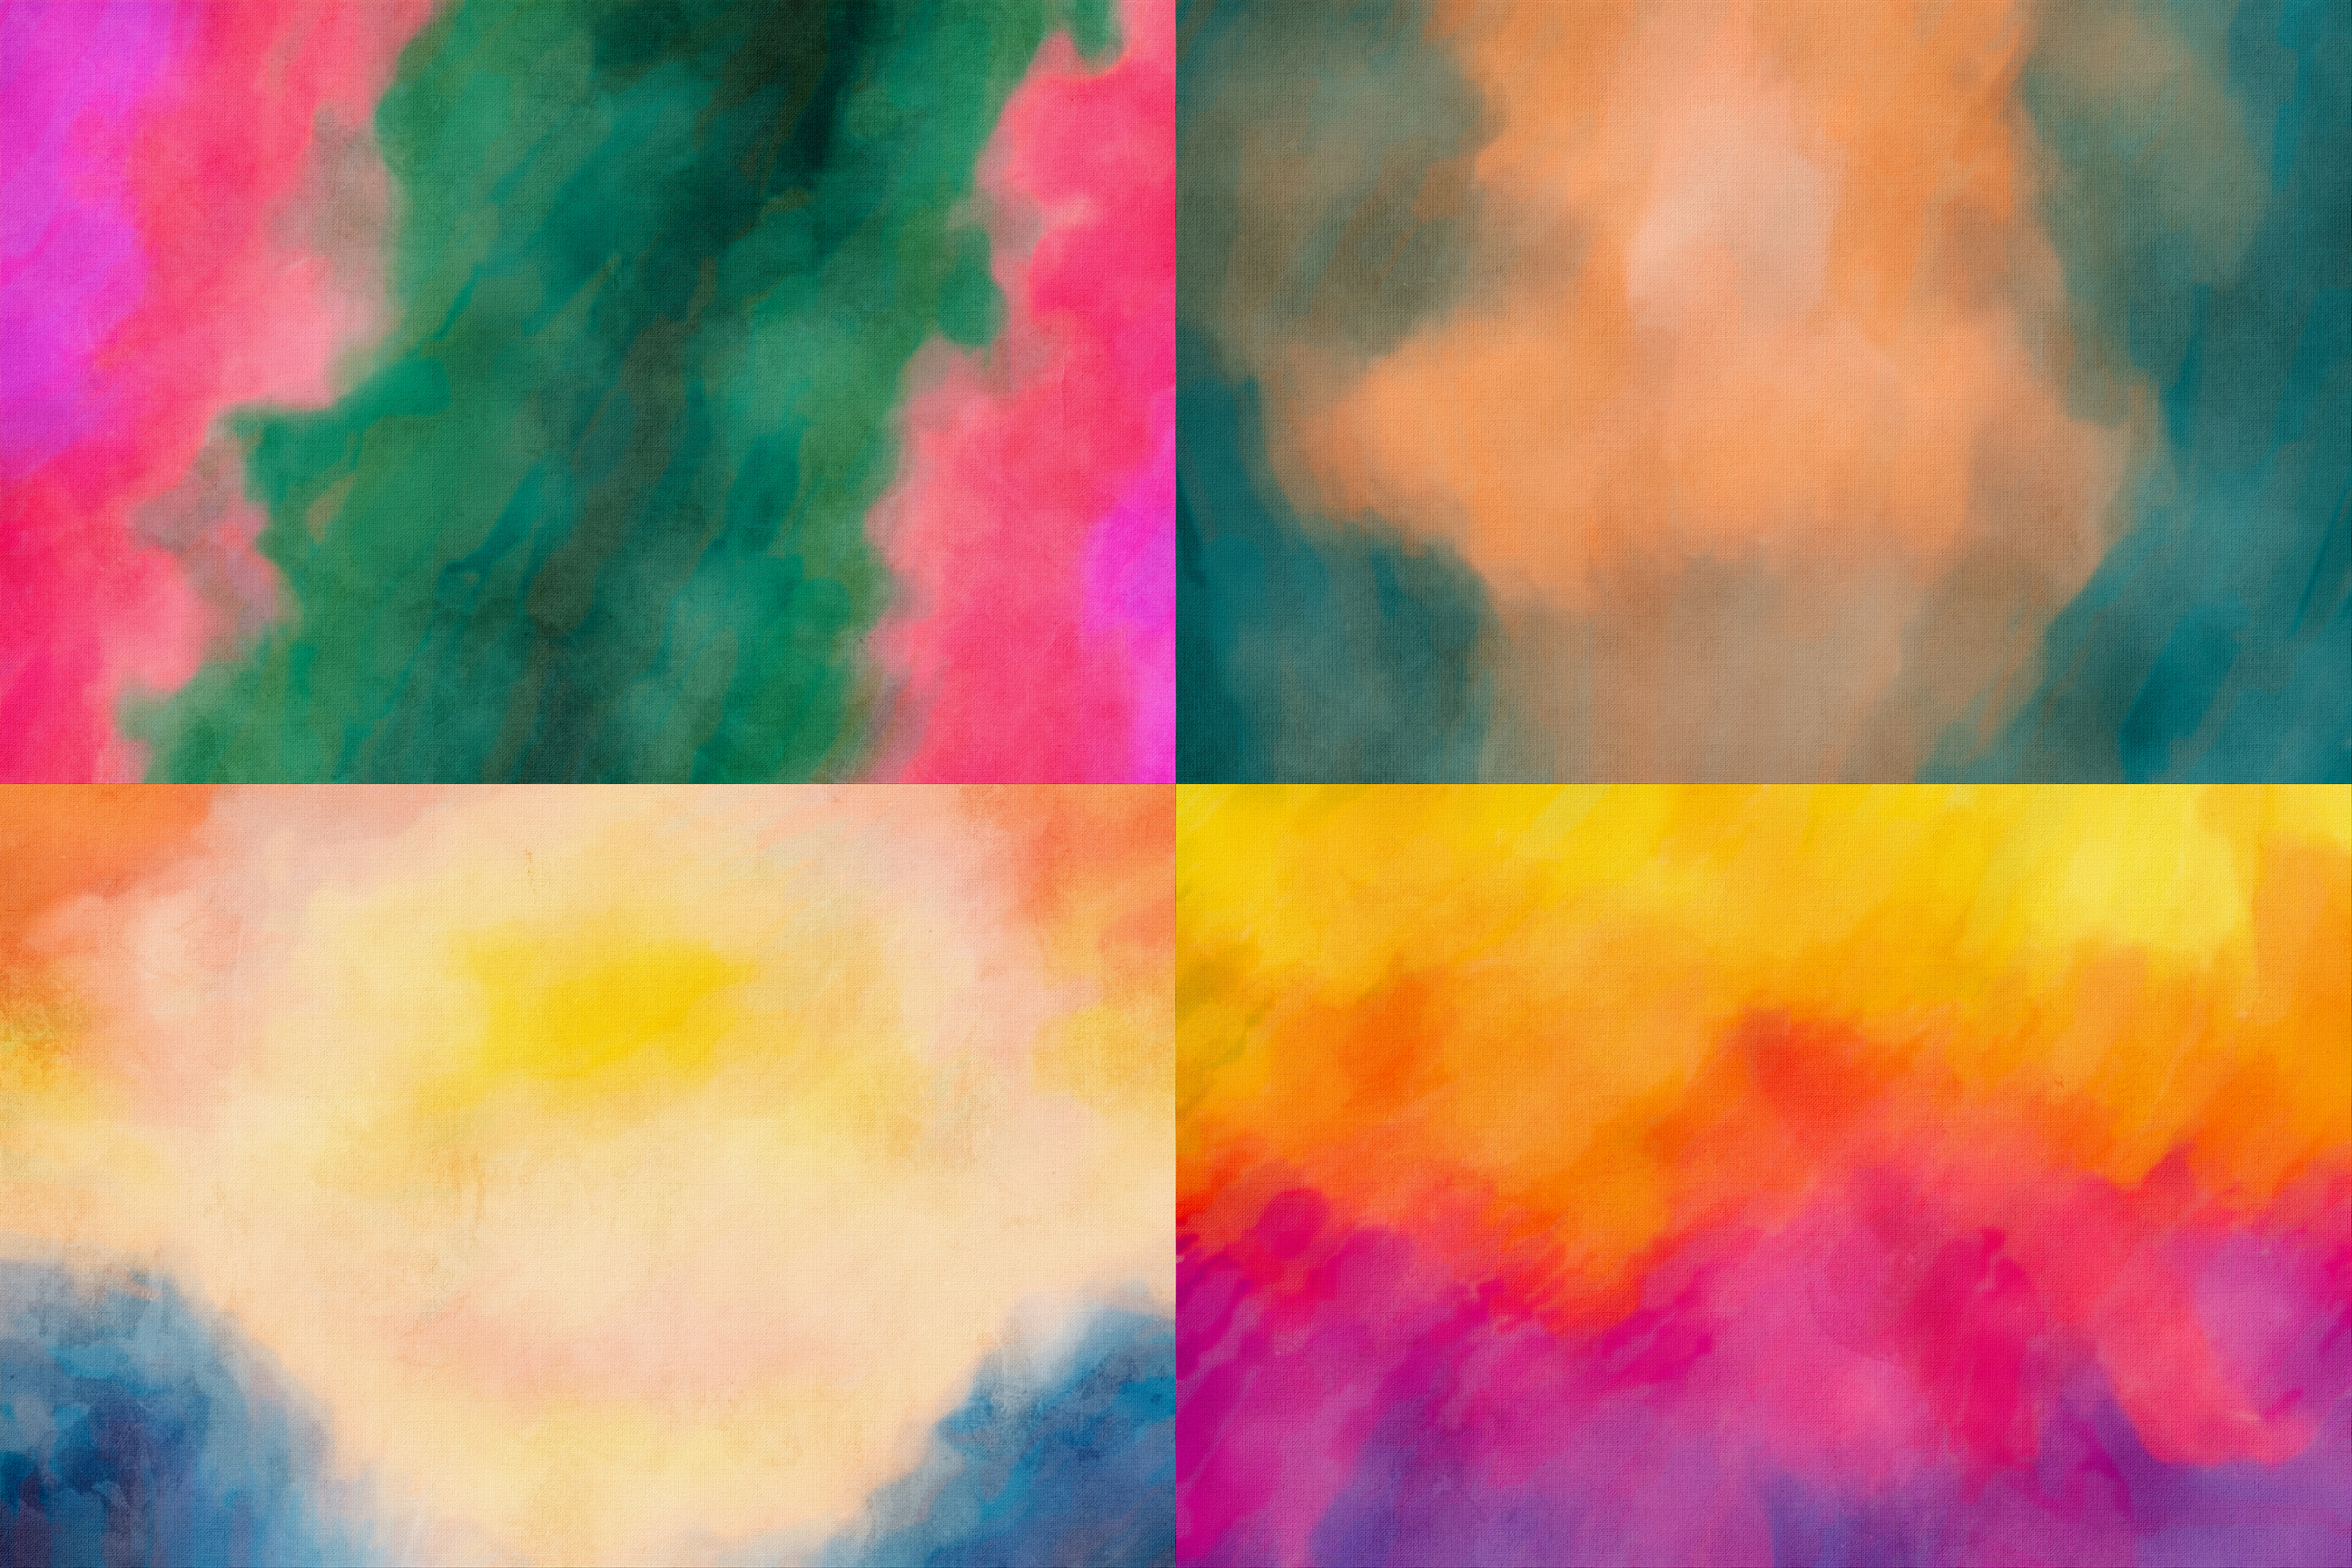 Abstract - Watercolor Textures Pack example image 5